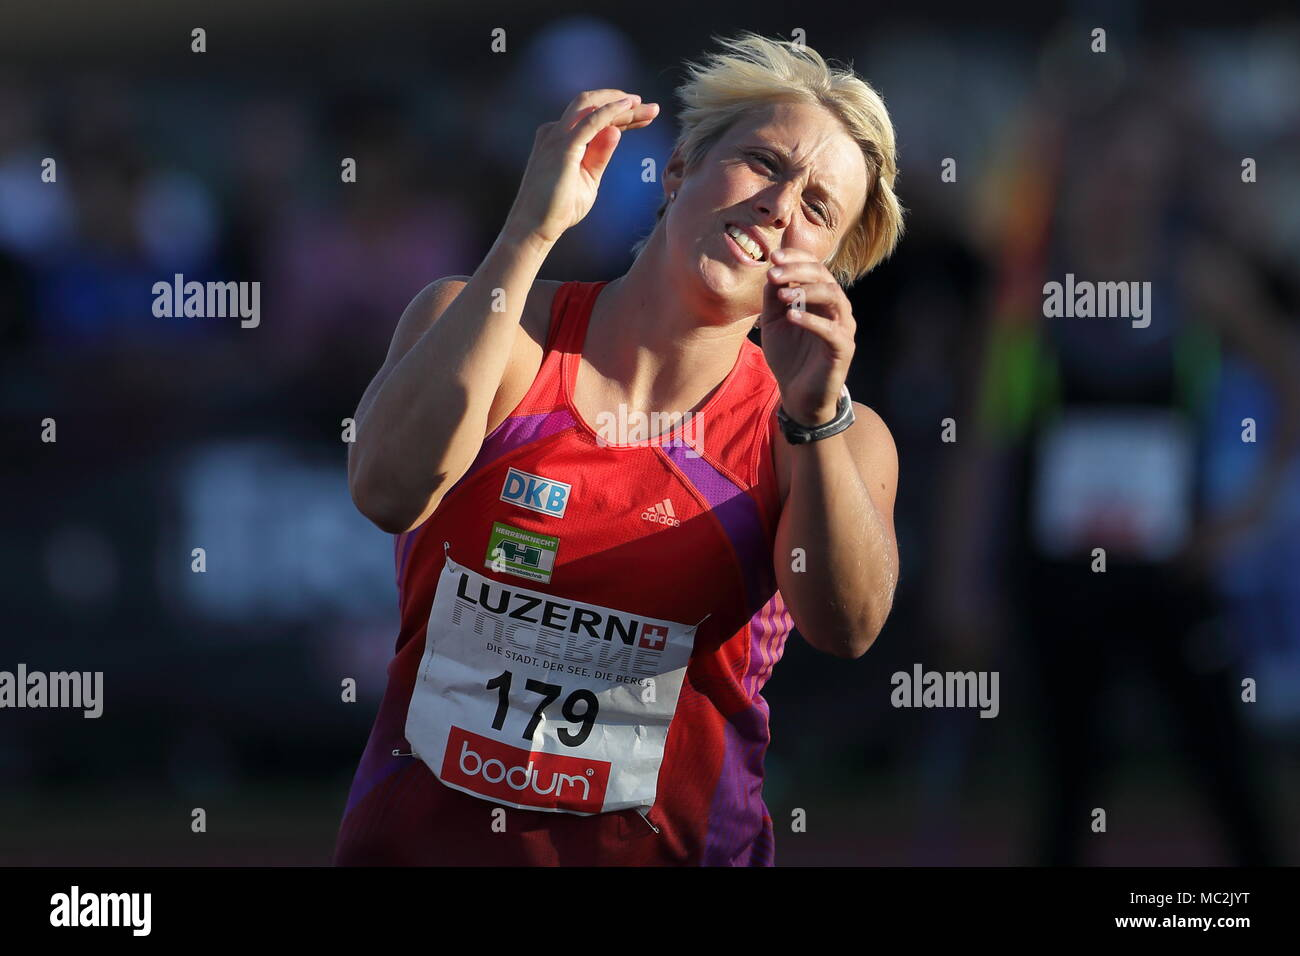 Lucerne, Switzerland. 17th, Jul 2012.  Christina Obergfoll of Germany reacts after throwing the javelin during the  Javelin Throw event of the Meeting - Stock Image